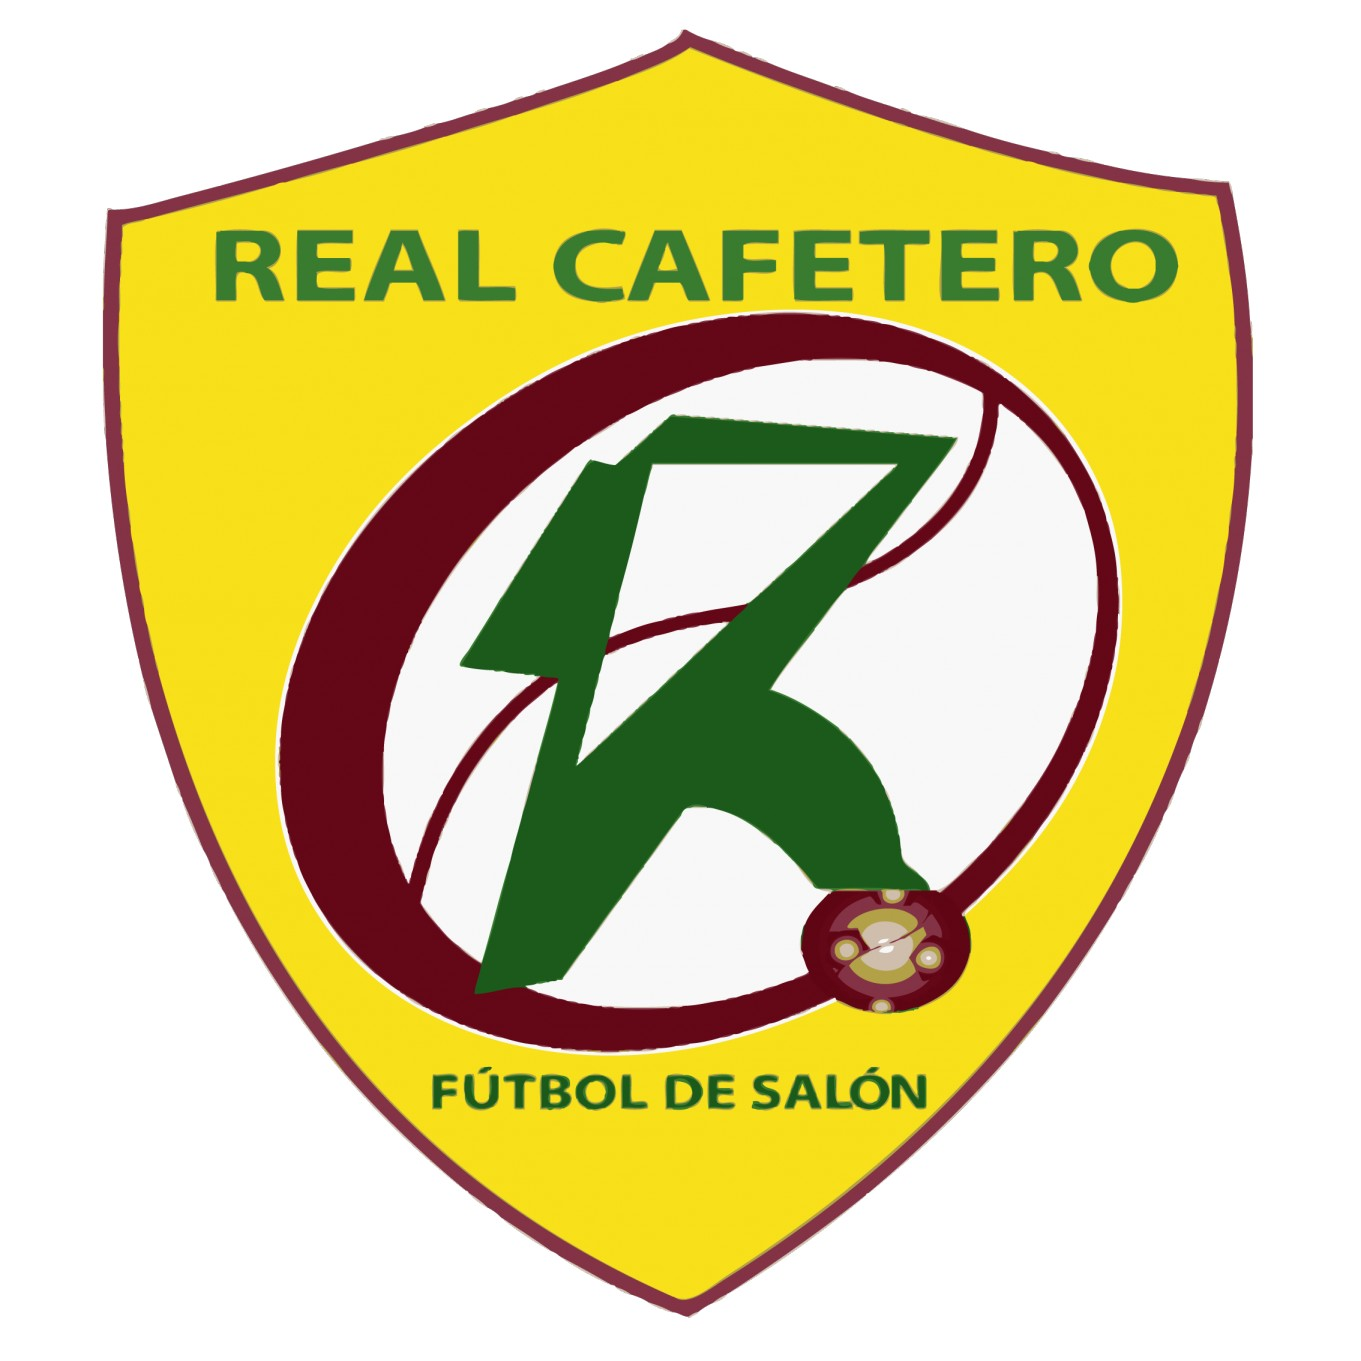 Club Real Cafetero